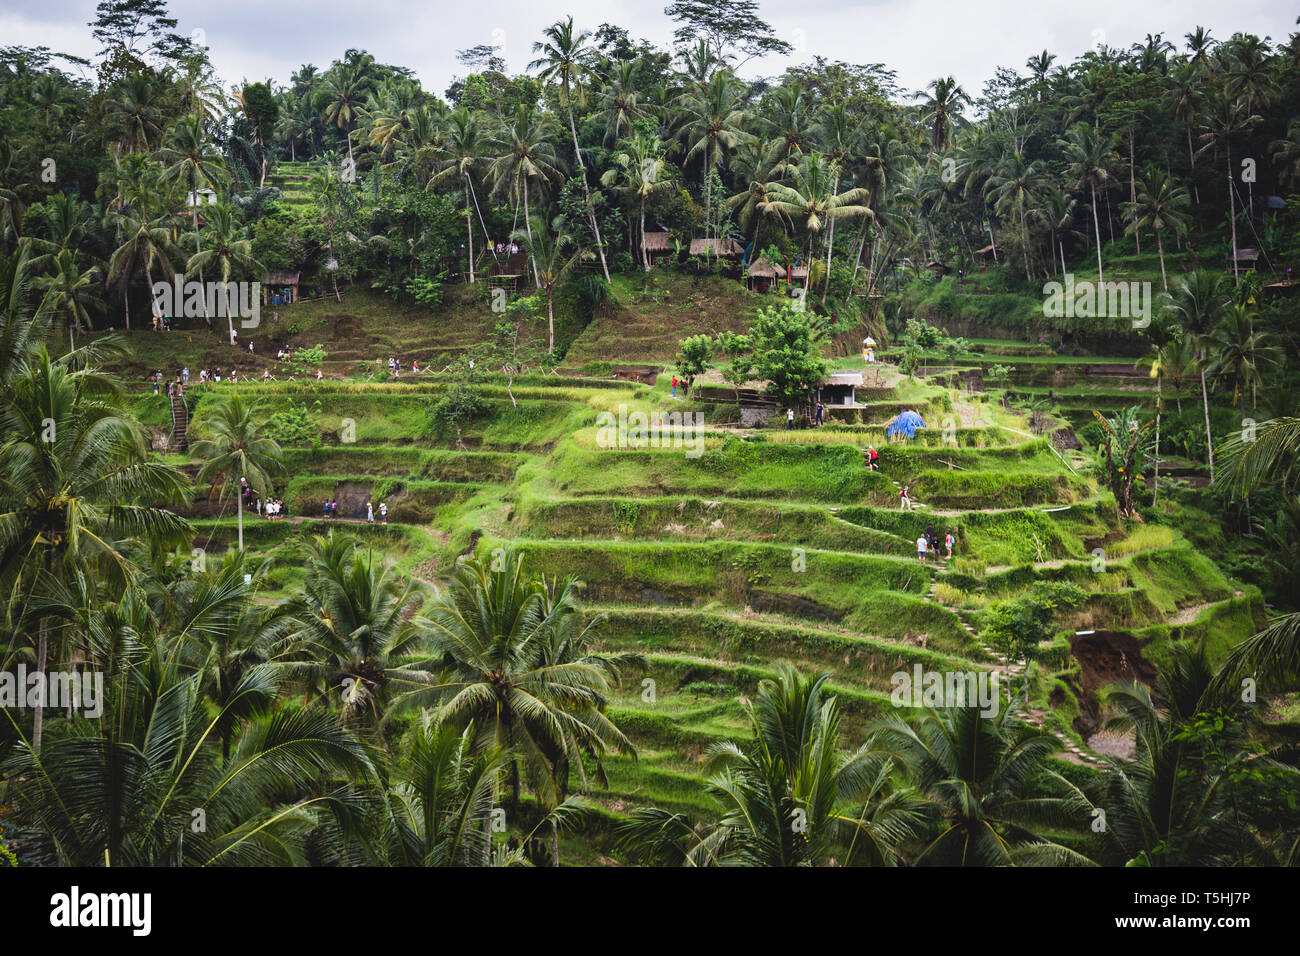 Tegallalang Rice Terraces in Bali, Indonesia - Stock Image